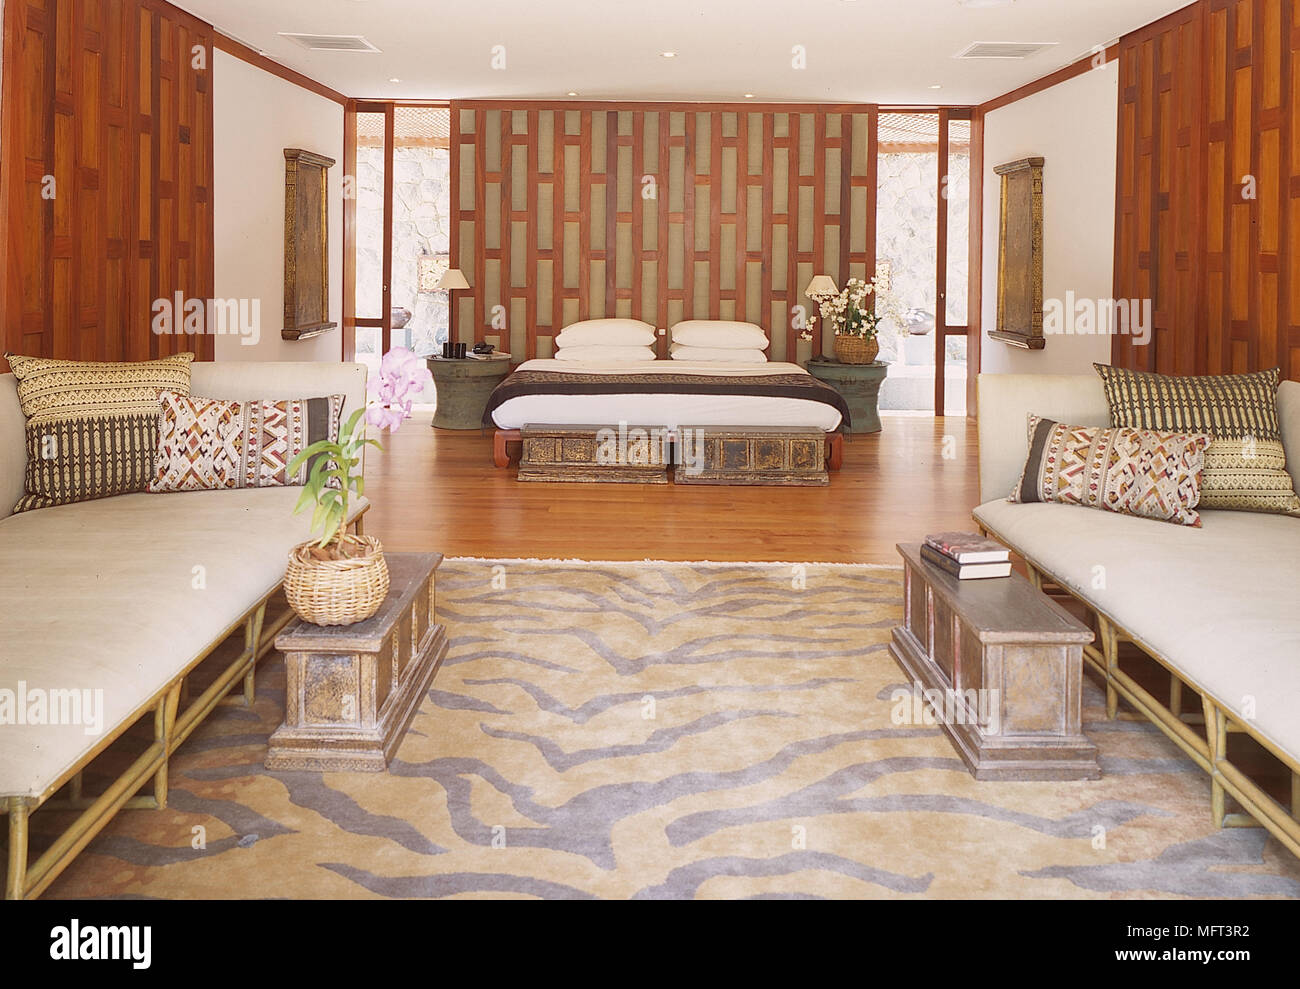 Bedroom white walls wood panelling flooring two sofas side ...